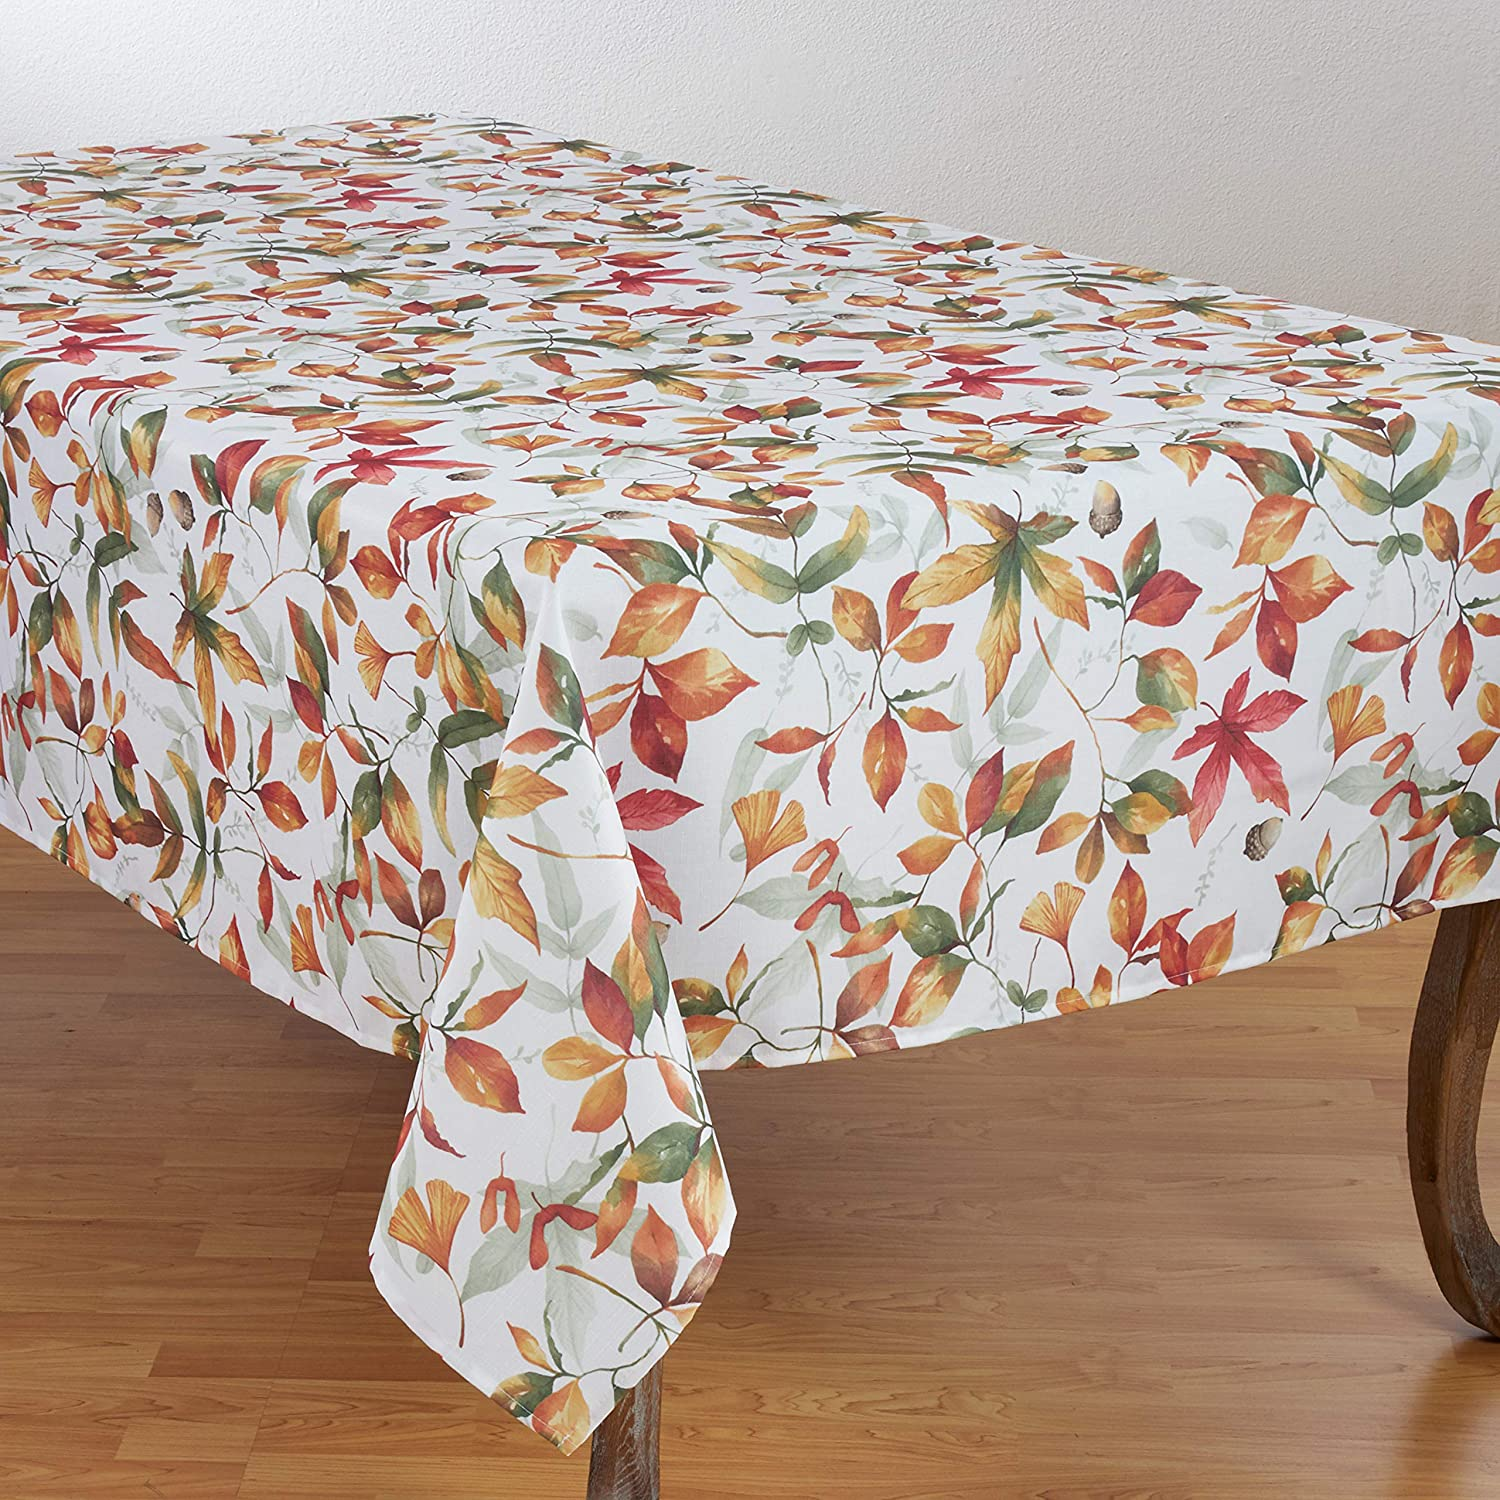 SARO LIFESTYLE 5050.M1672B Feuilles Collection Beautiful Polyester Table Runner with Fall Leaves Design, 16